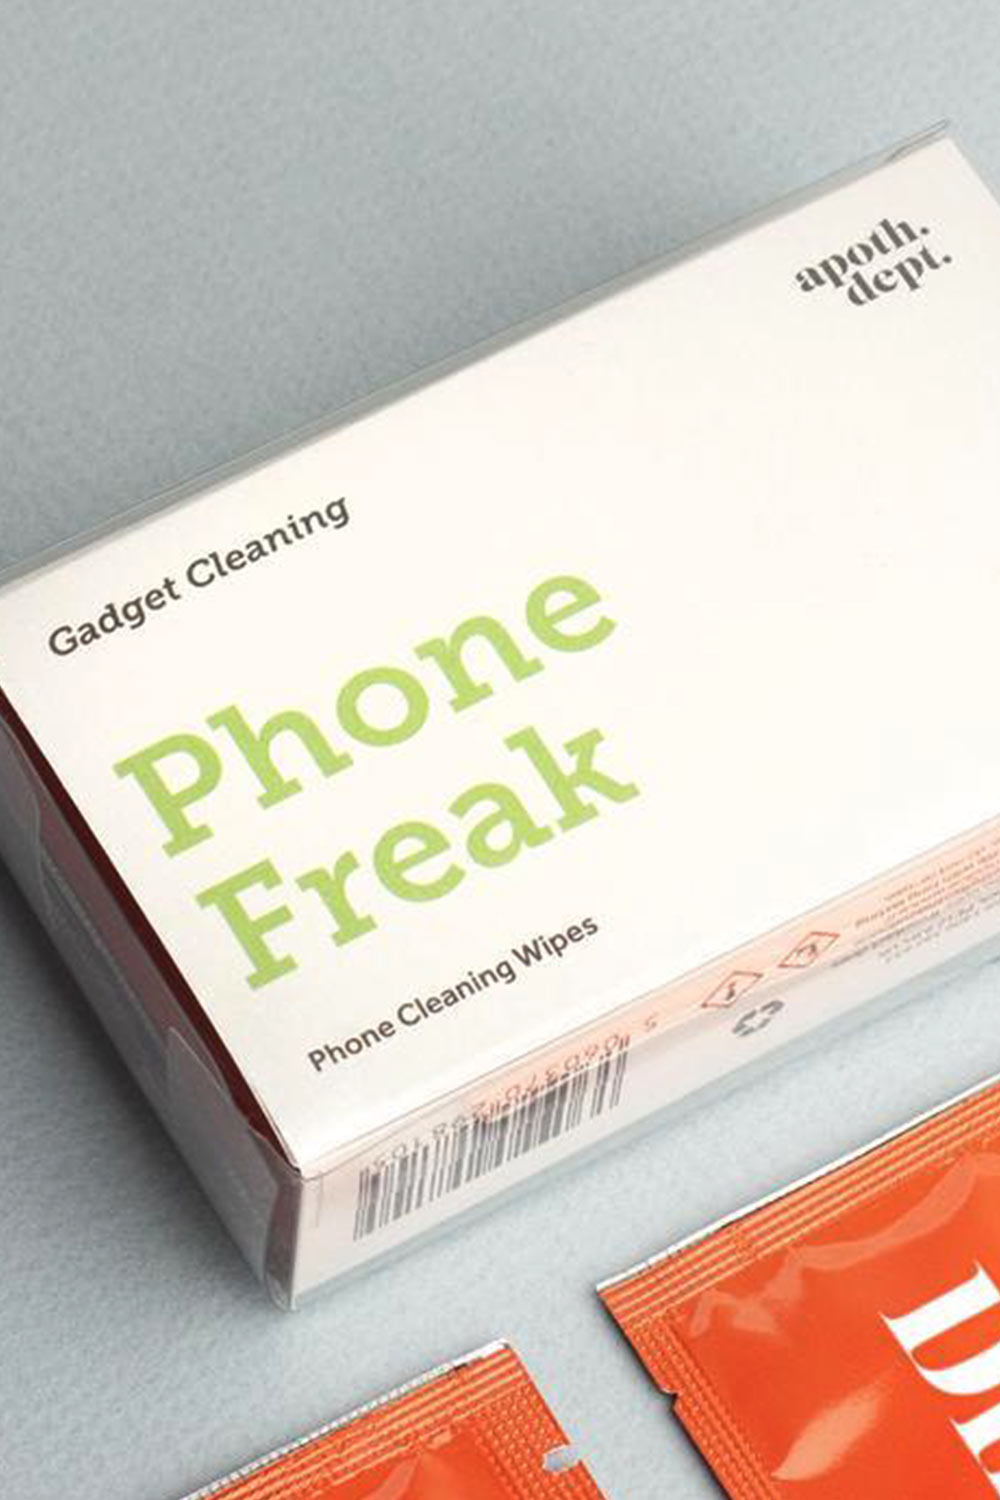 Phone Freak-Gadget Cleaning Wipes - Kabana Shop